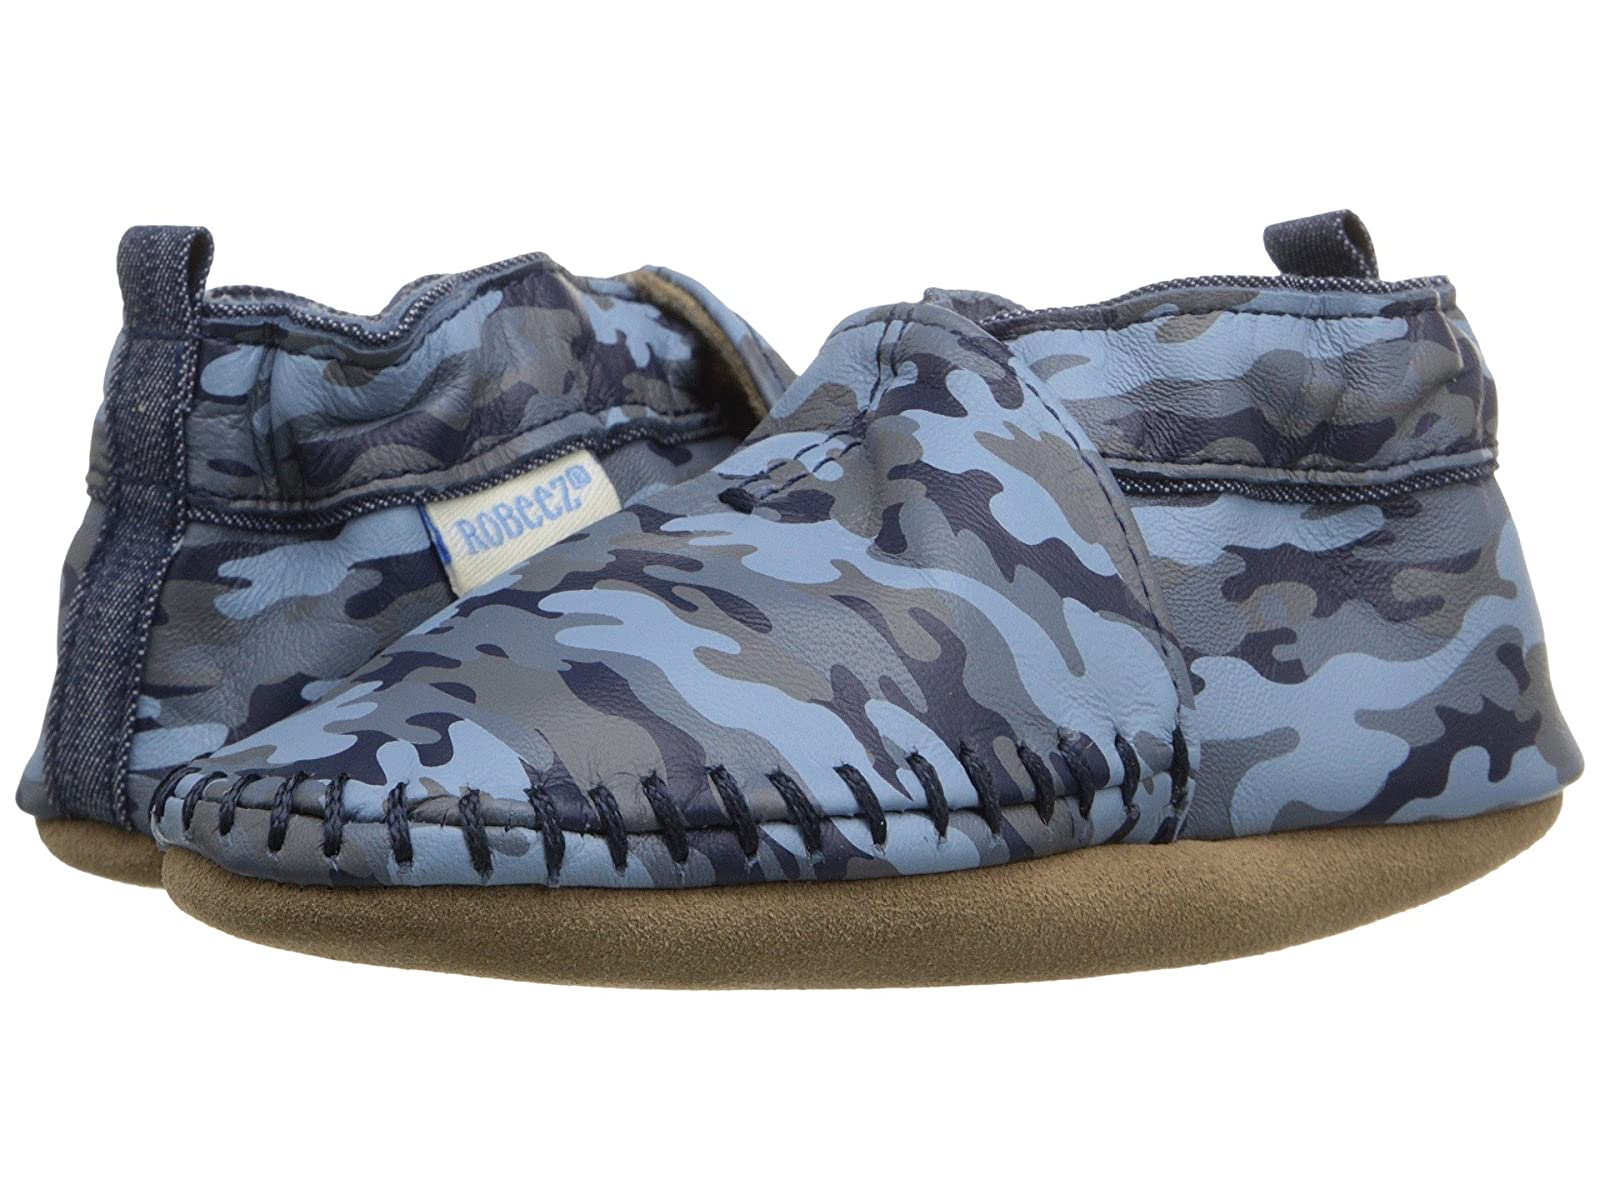 Robeez Premium Leather Classic Moccasin Soft Sole (Infant/Toddler)Atmospheric grades have affordable shoes